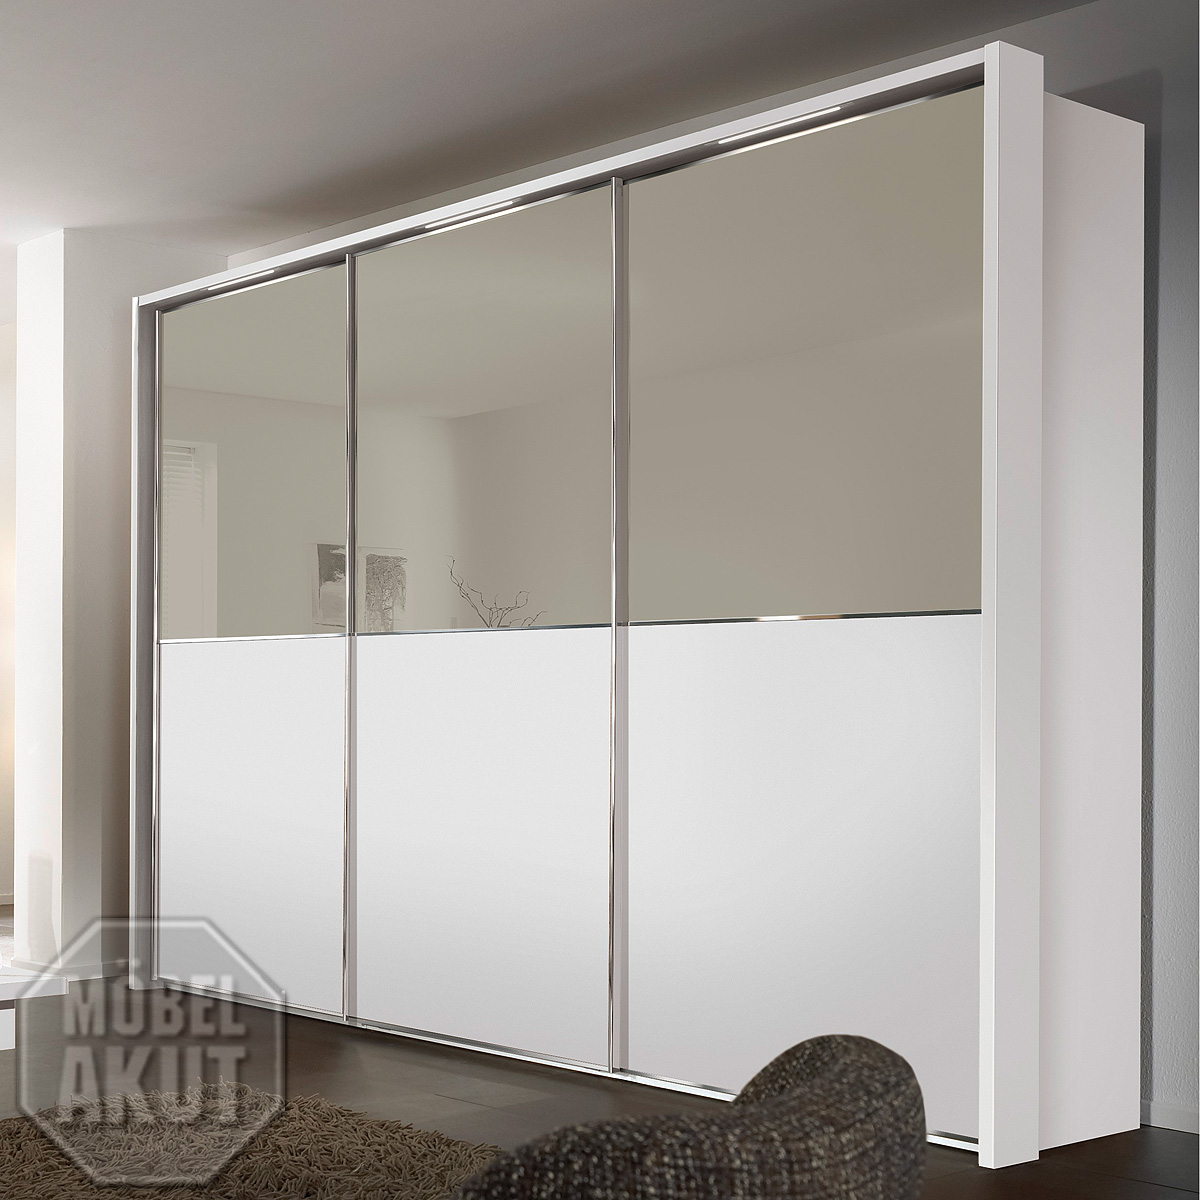 schwebet renschrank attraction von nolte kleiderschrank wei glas saharaglas ebay. Black Bedroom Furniture Sets. Home Design Ideas